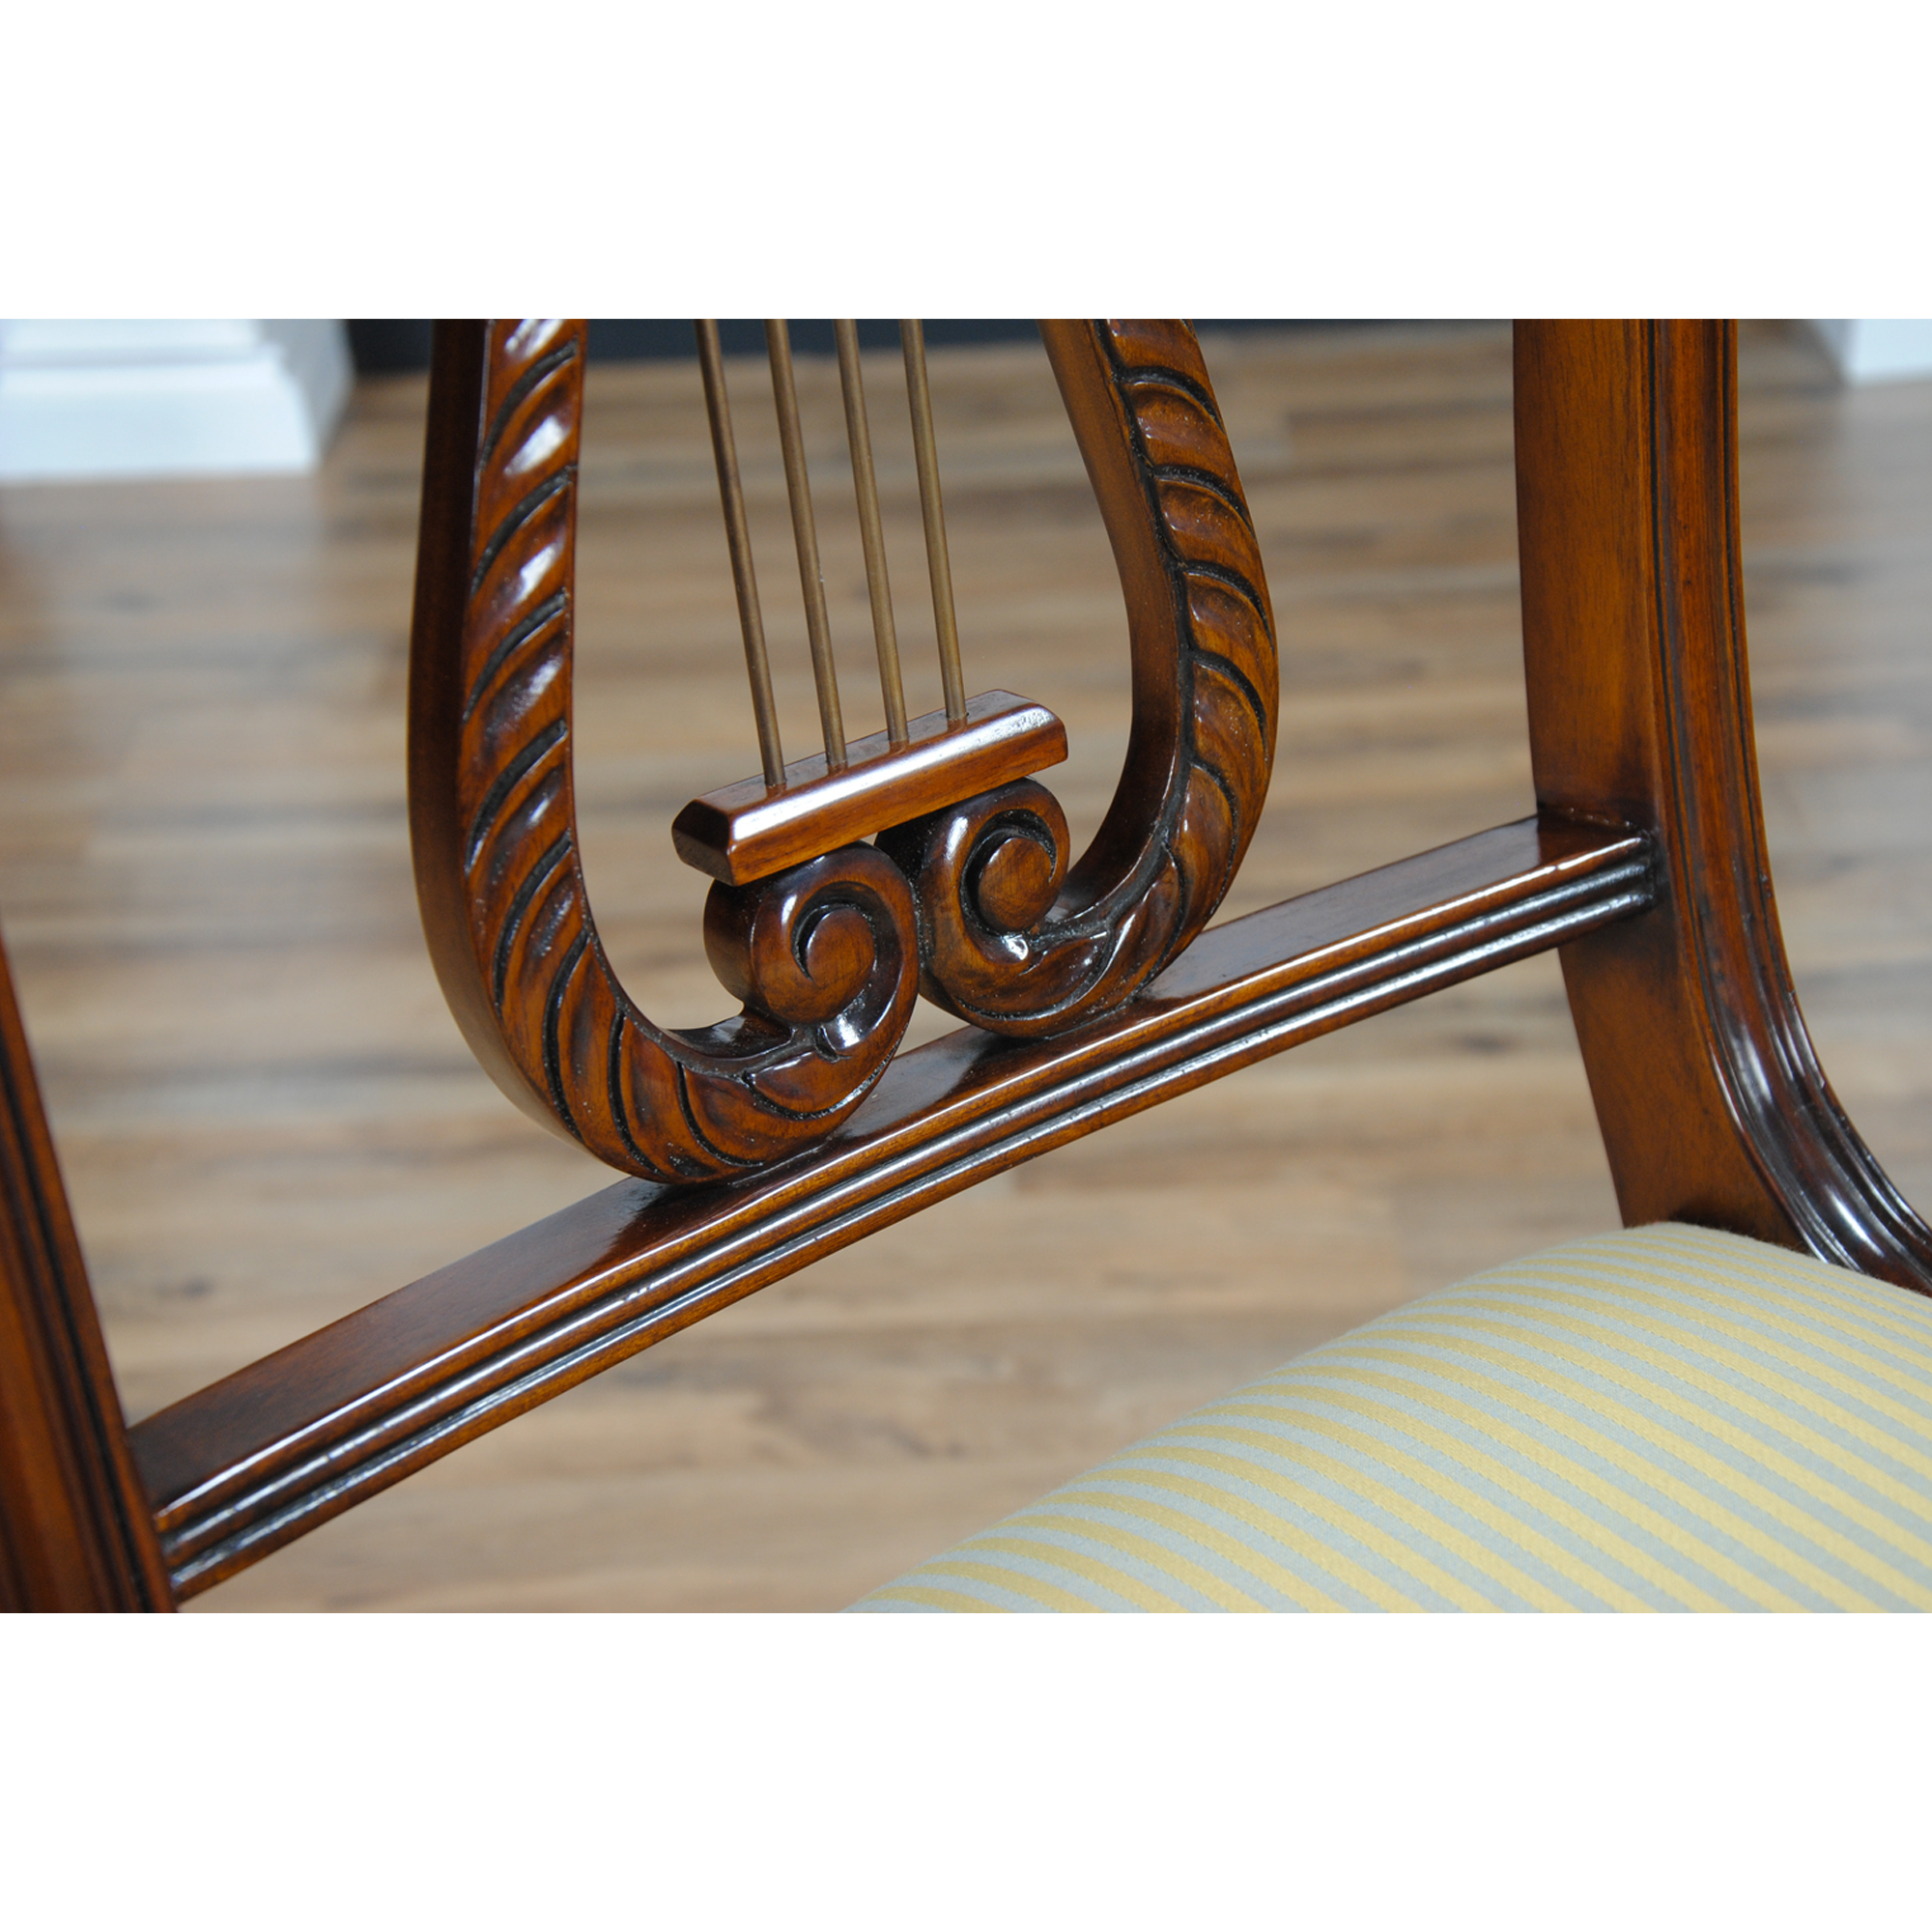 Lyre Back Chairs Lyre Side Chair Harp Back Chair Niagara Furniture Free